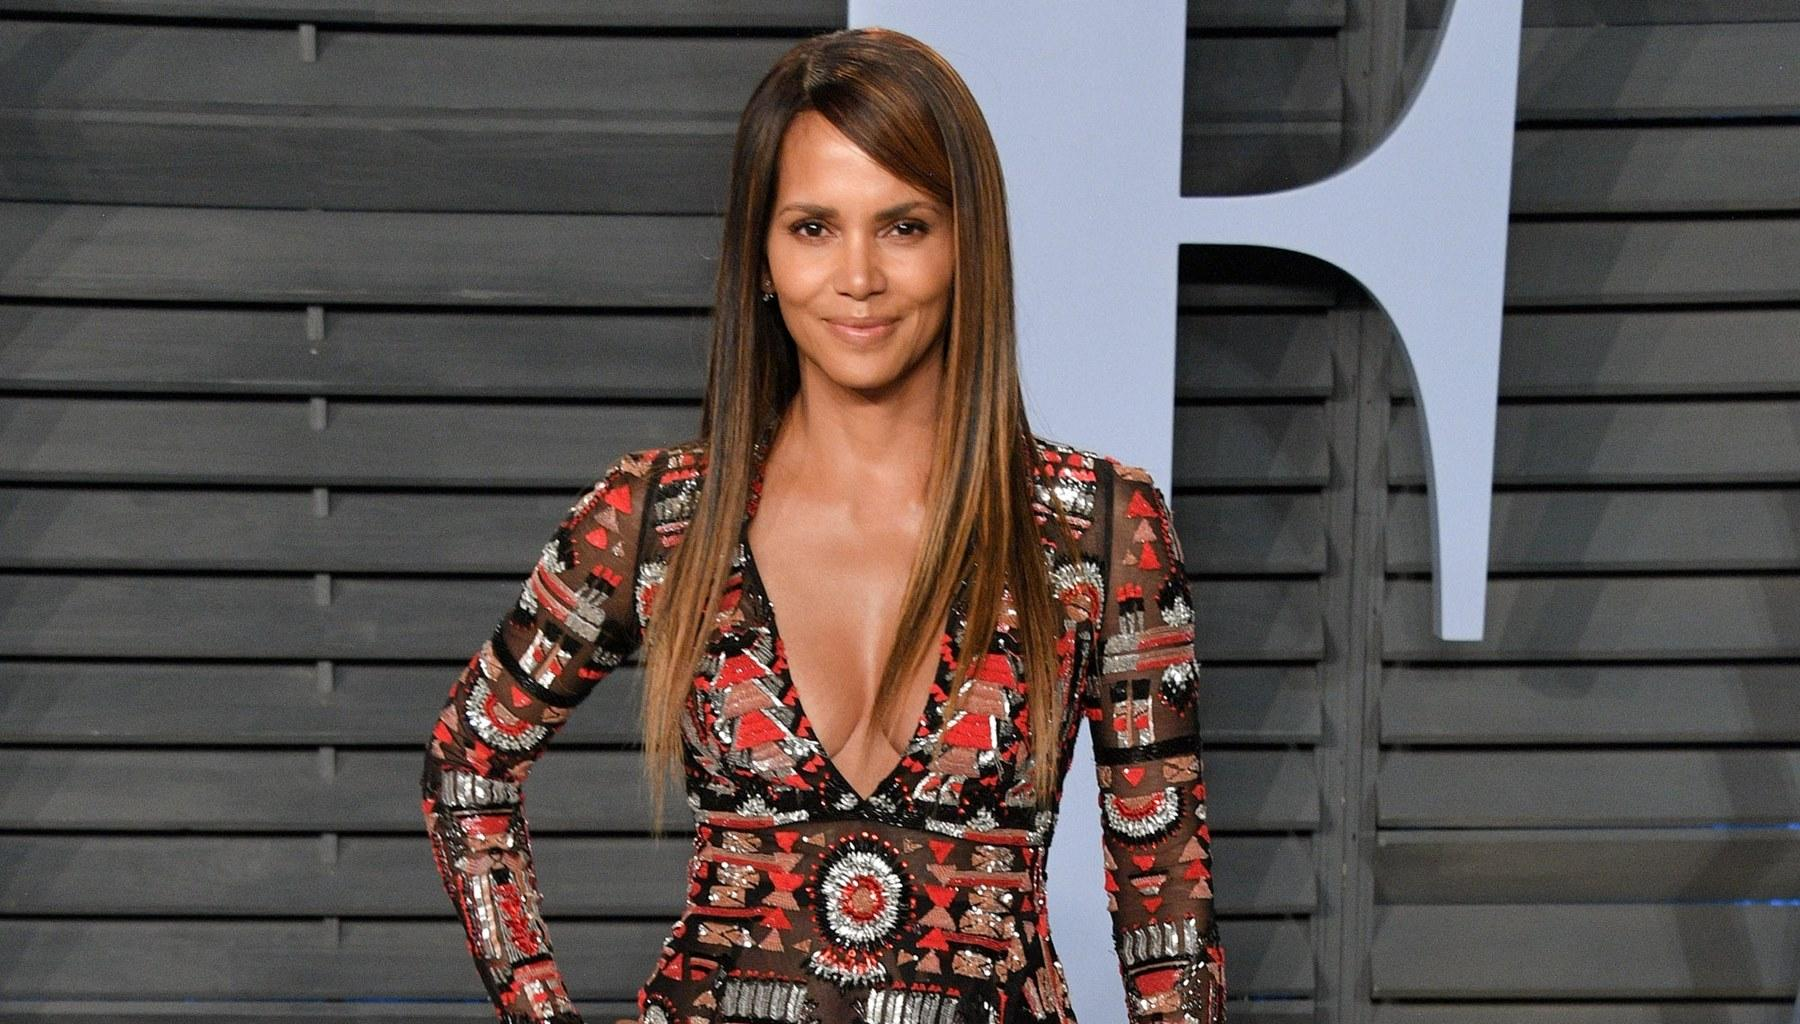 Halle Berry Shows Off Her Stunning Figure In Sheer Top And No Pants In Garden Photo That Has Fans Salivating